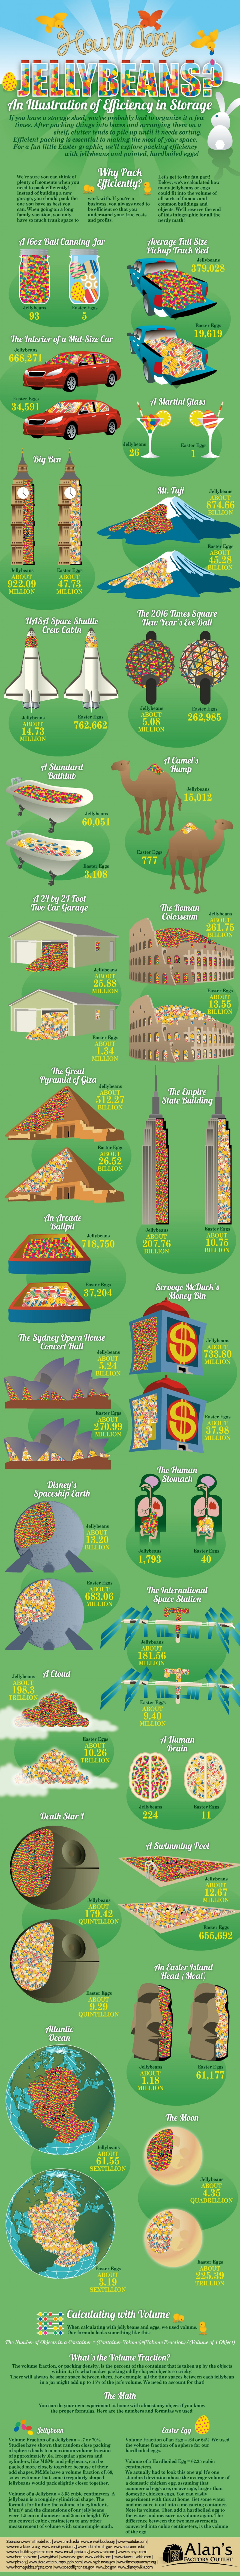 How Many Jellybeans? Infographic